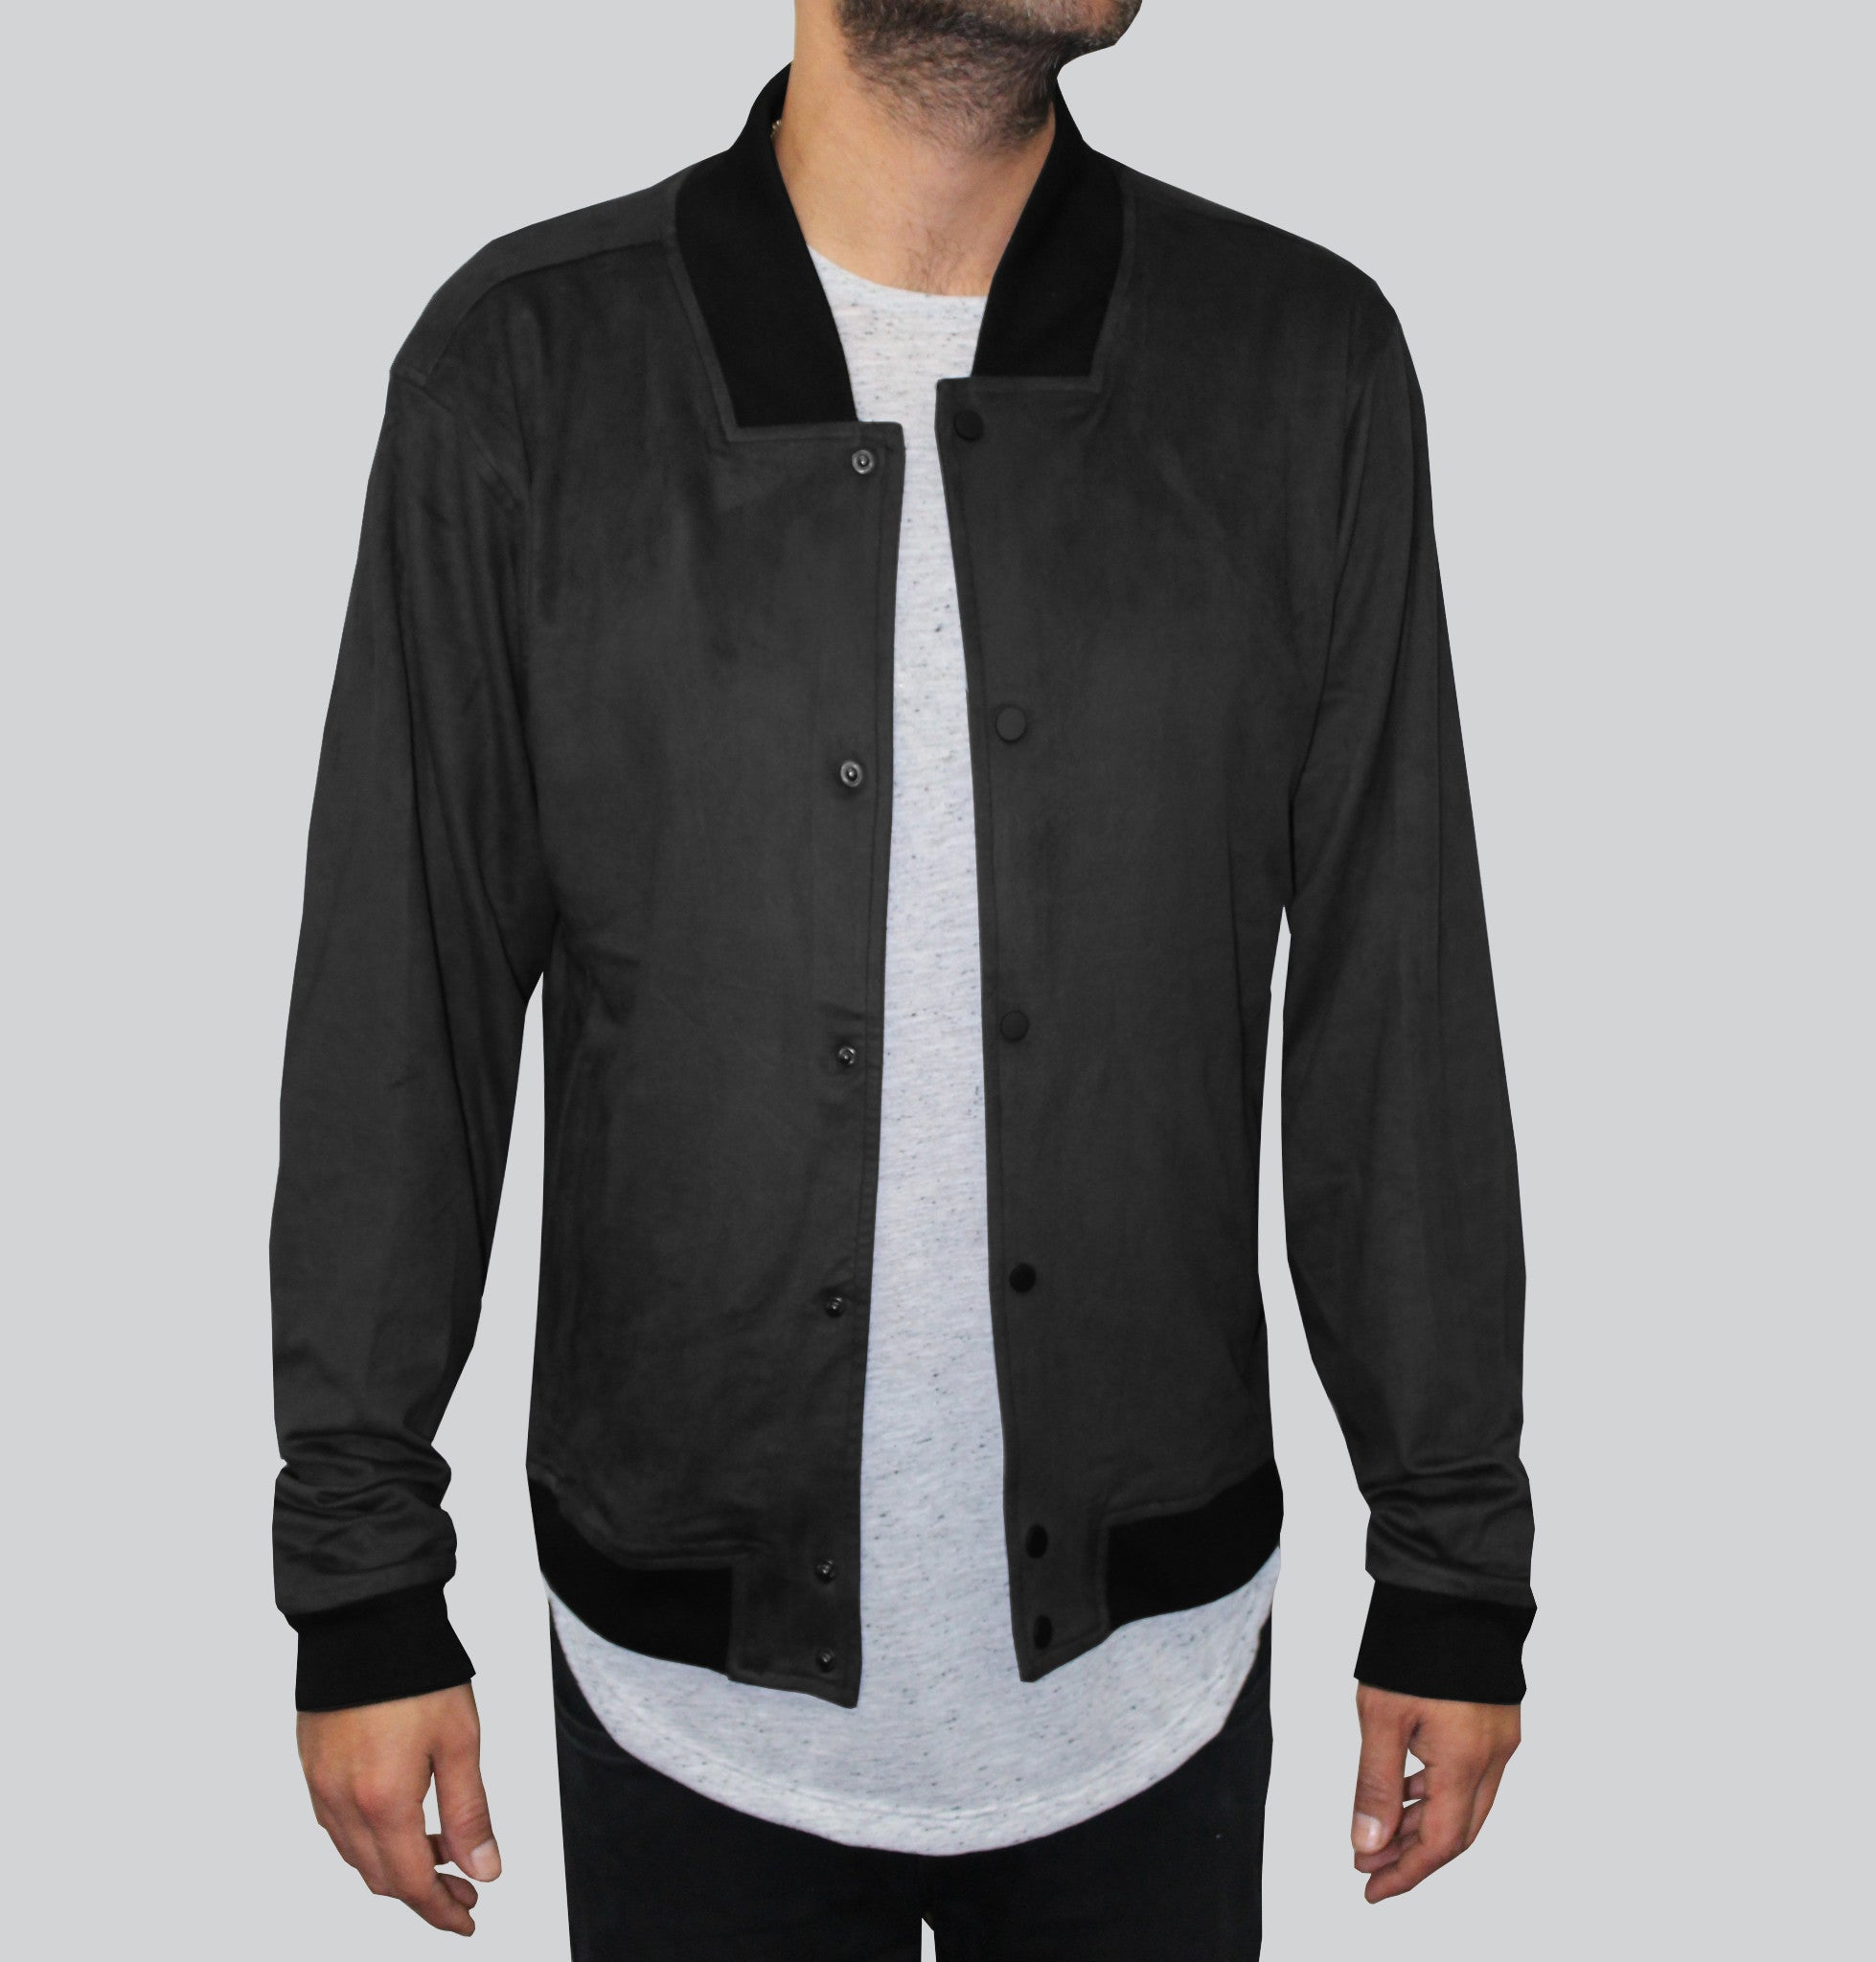 The Sway Ultra Suede Black Jacket